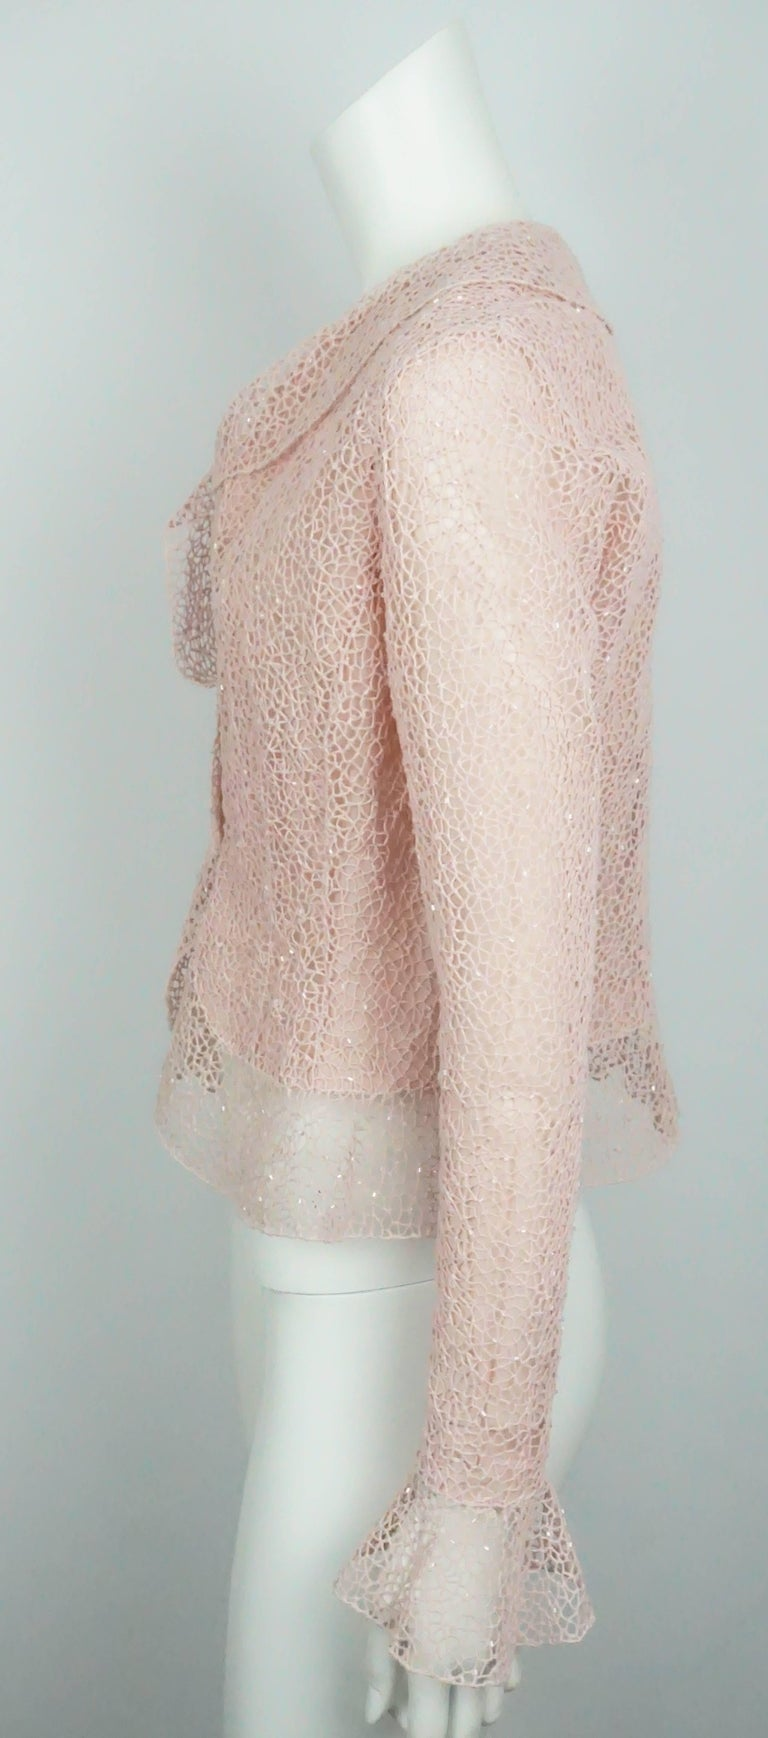 Oscar De La Renta Pink Crochet Lace Sequin Jacket - 8  This beautiful cotton jacket is in good condition. There are minor stains around the wrist and in one of the armpits of the jacket. It is lined in silk organza and there are two jewels that